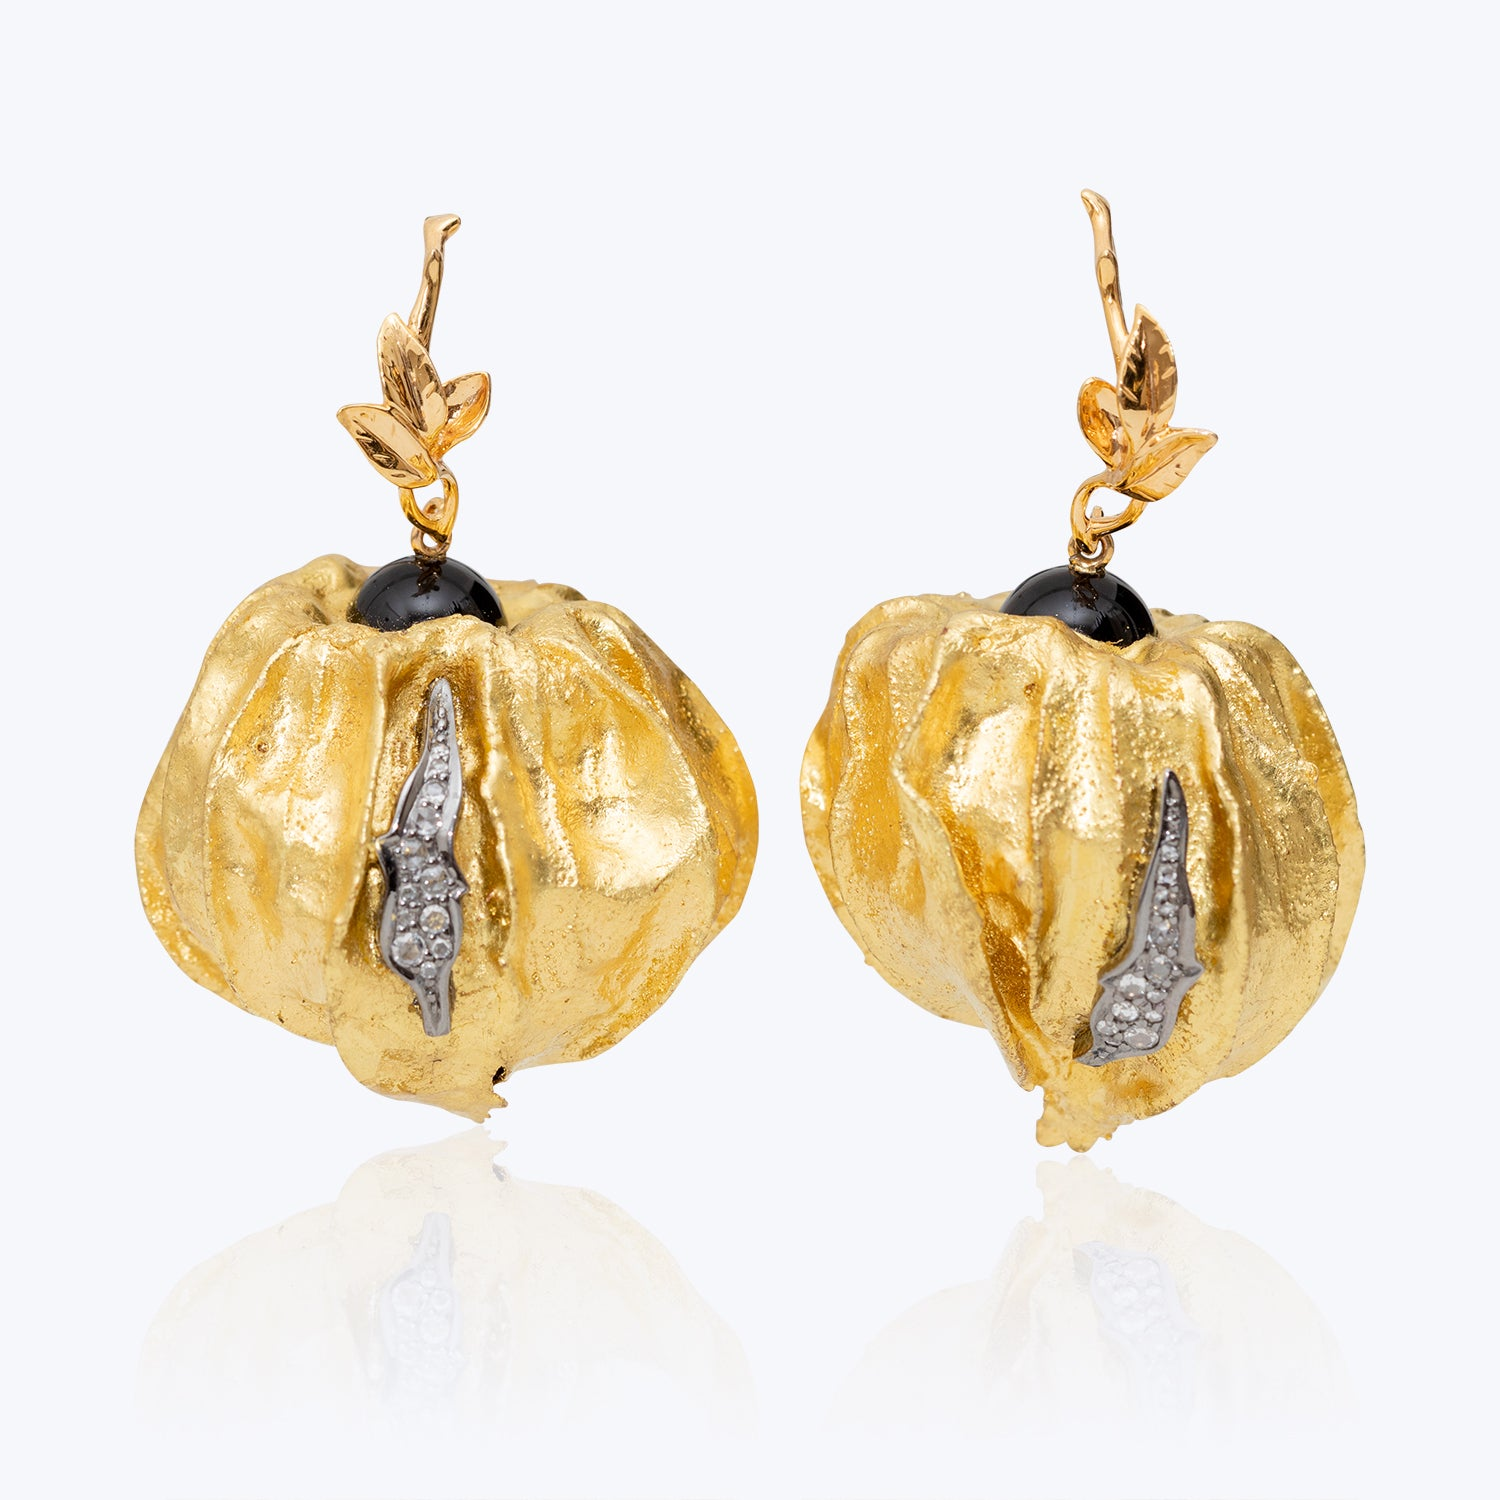 Cape Gooseberry Earrings with Diamonds & Black Agate wt. 15.72 g.